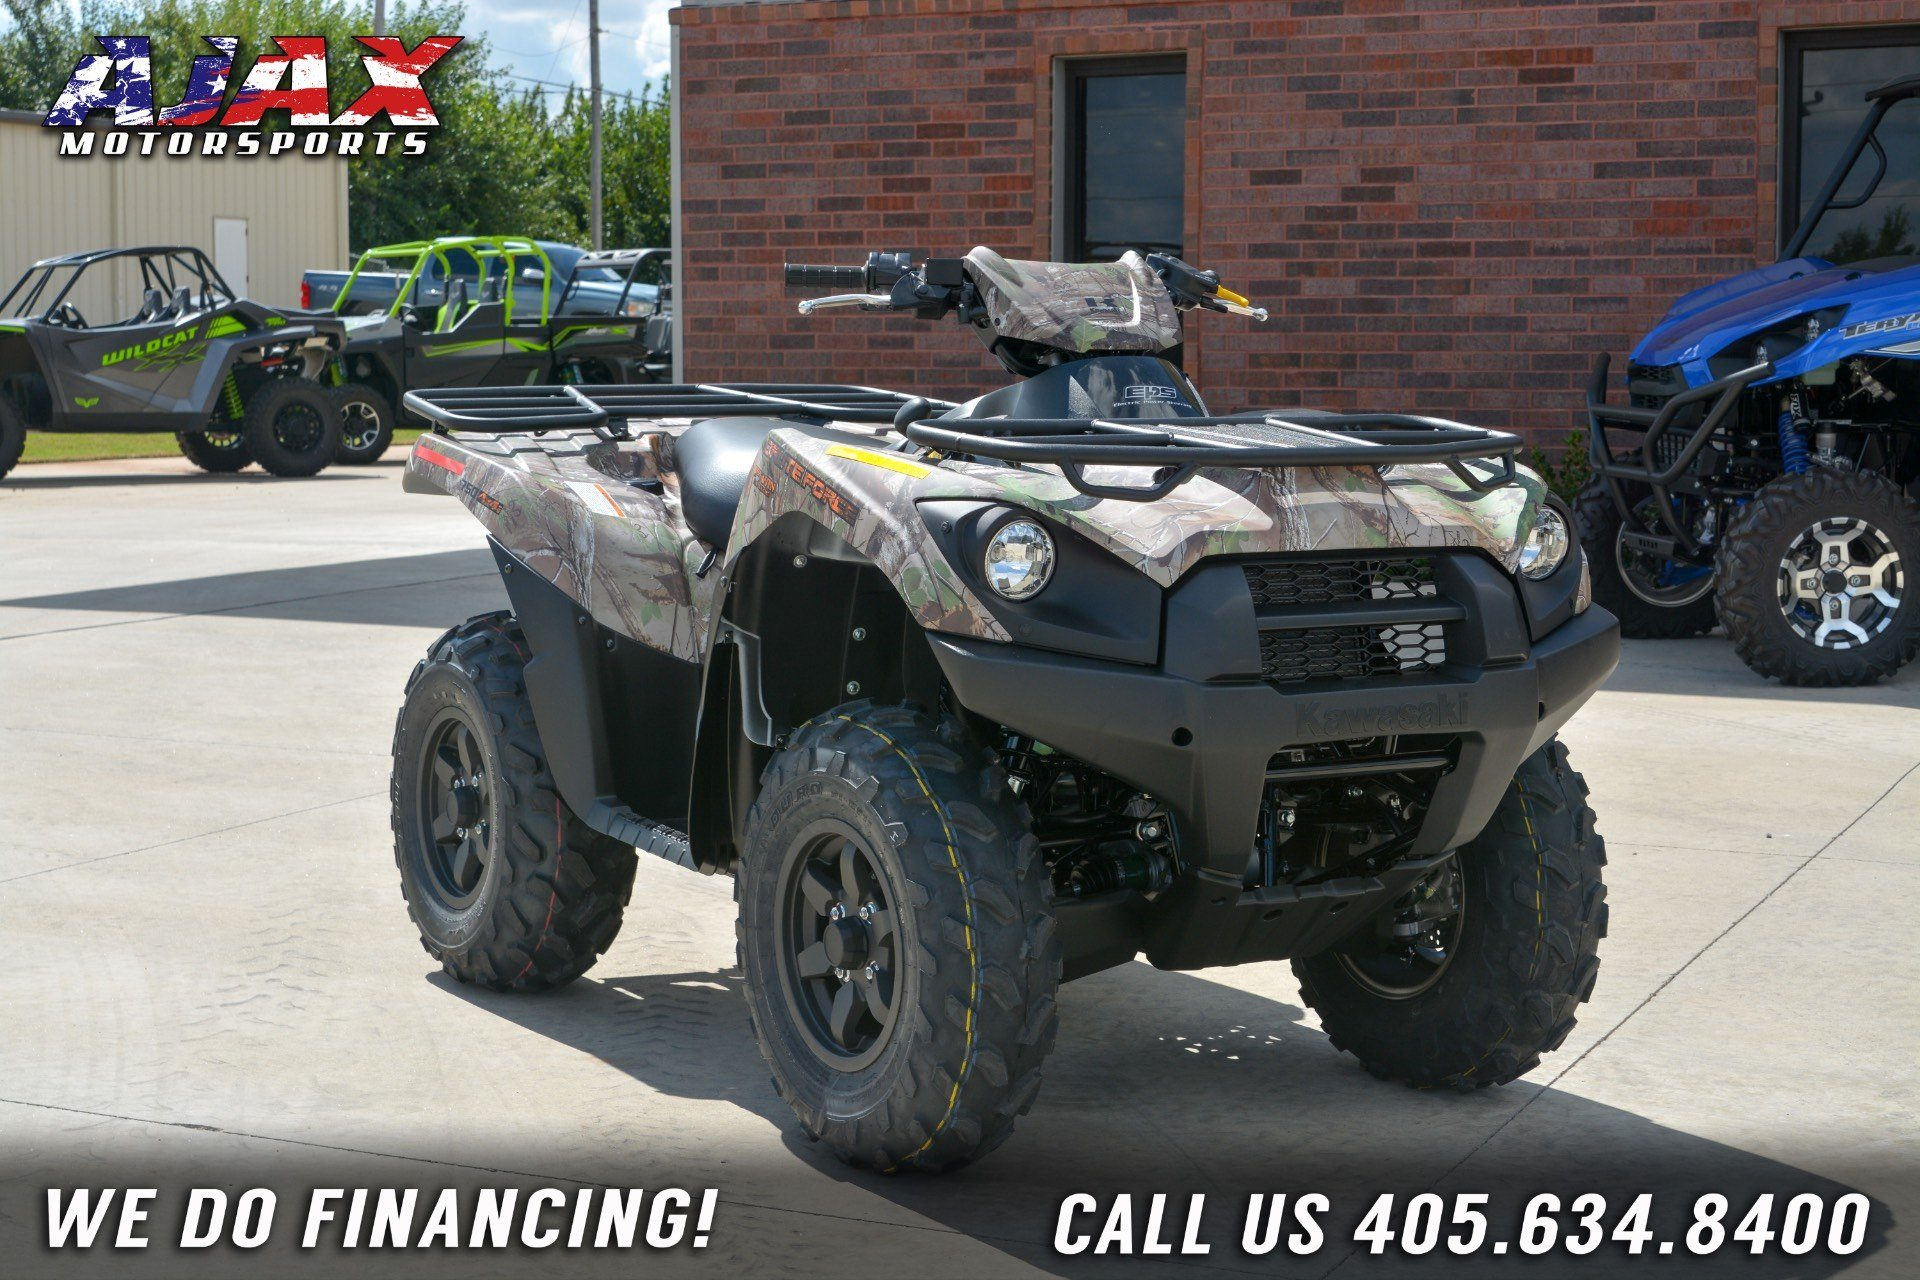 2019 Kawasaki Brute Force 750 4x4i EPS Camo in Oklahoma City, Oklahoma - Photo 3